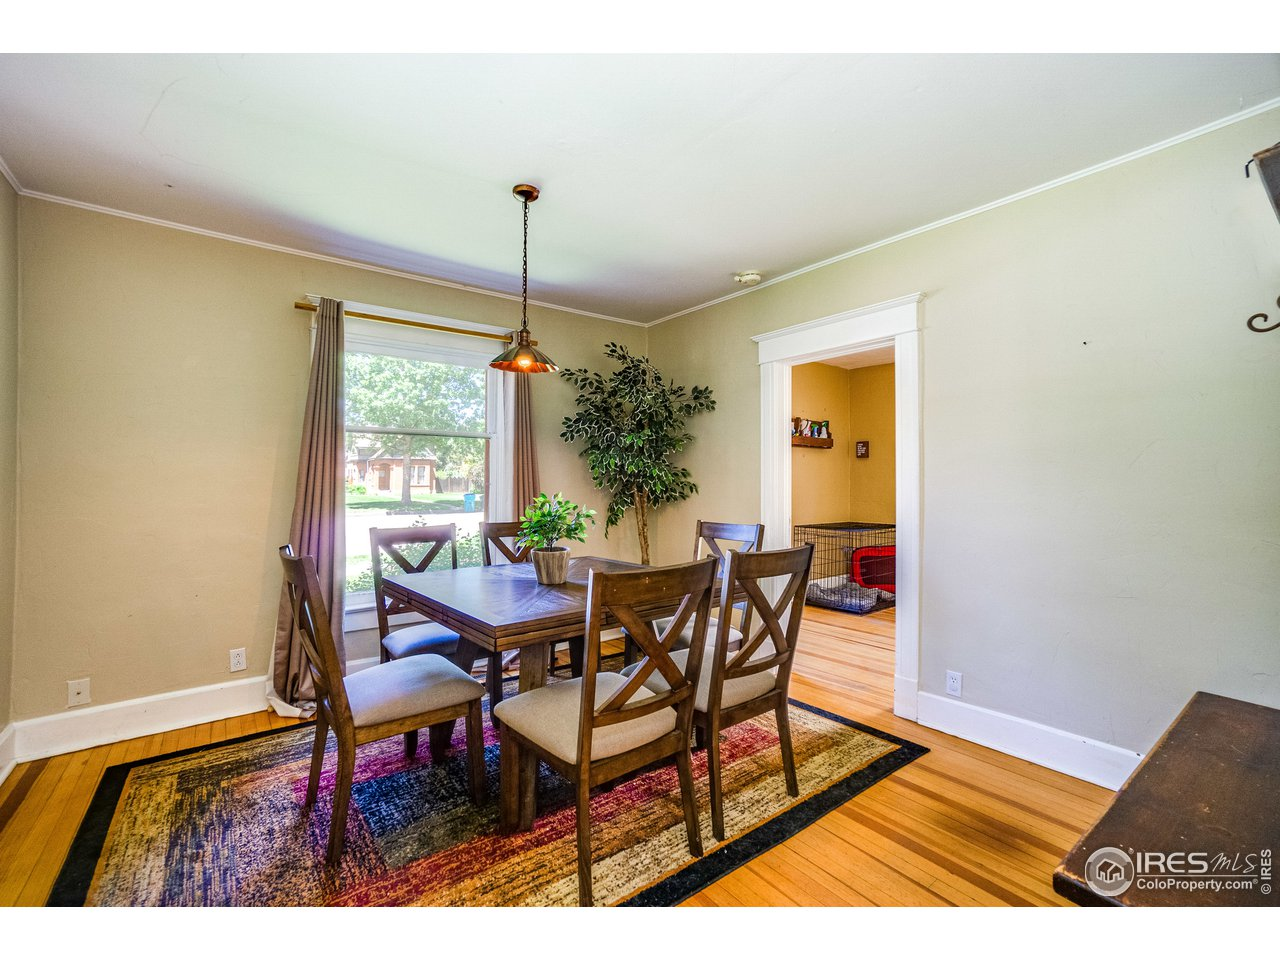 Main house dining room with wood floors